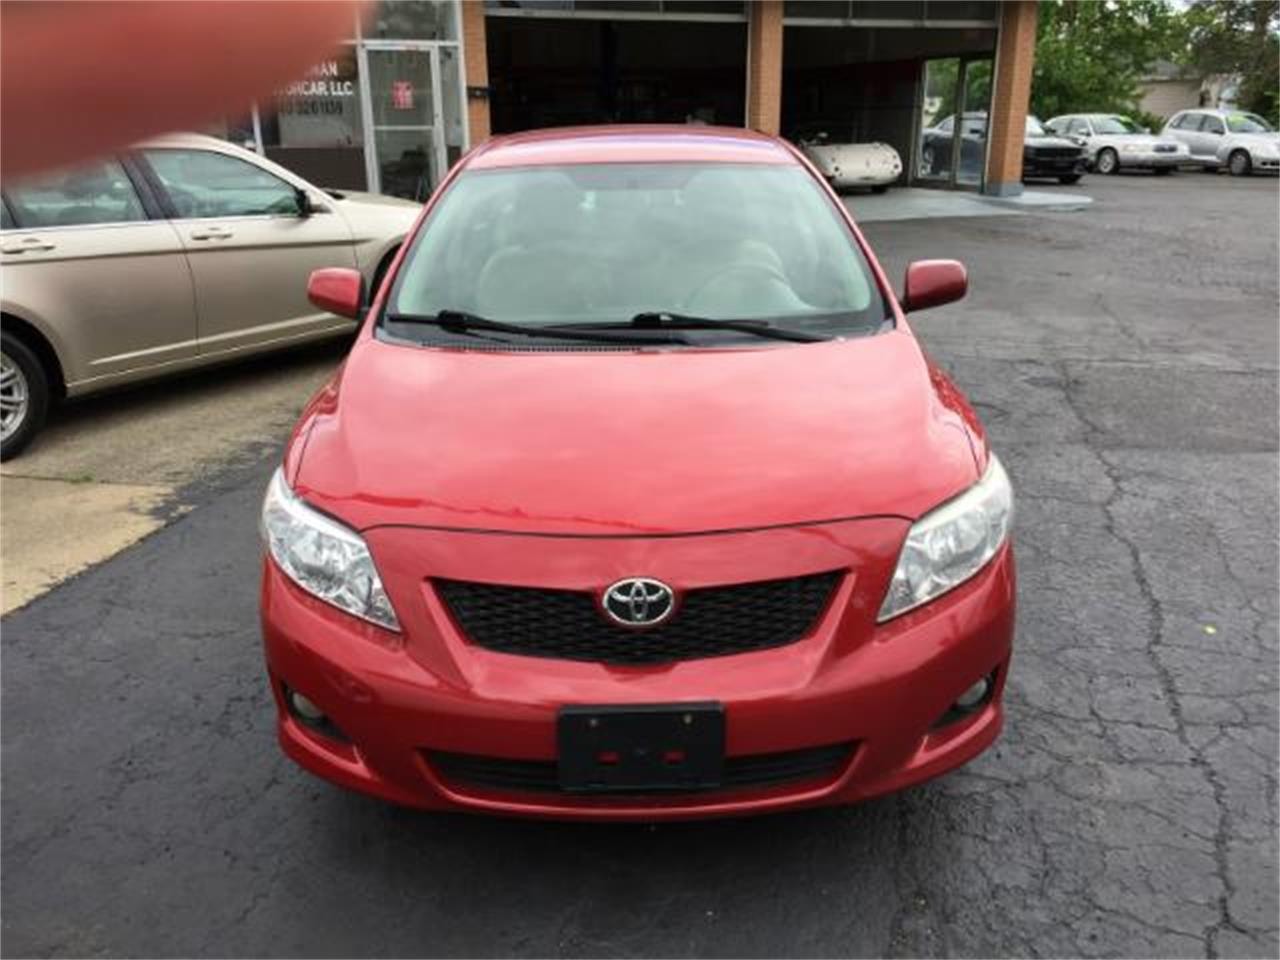 Large Picture of '09 Corolla - M78N